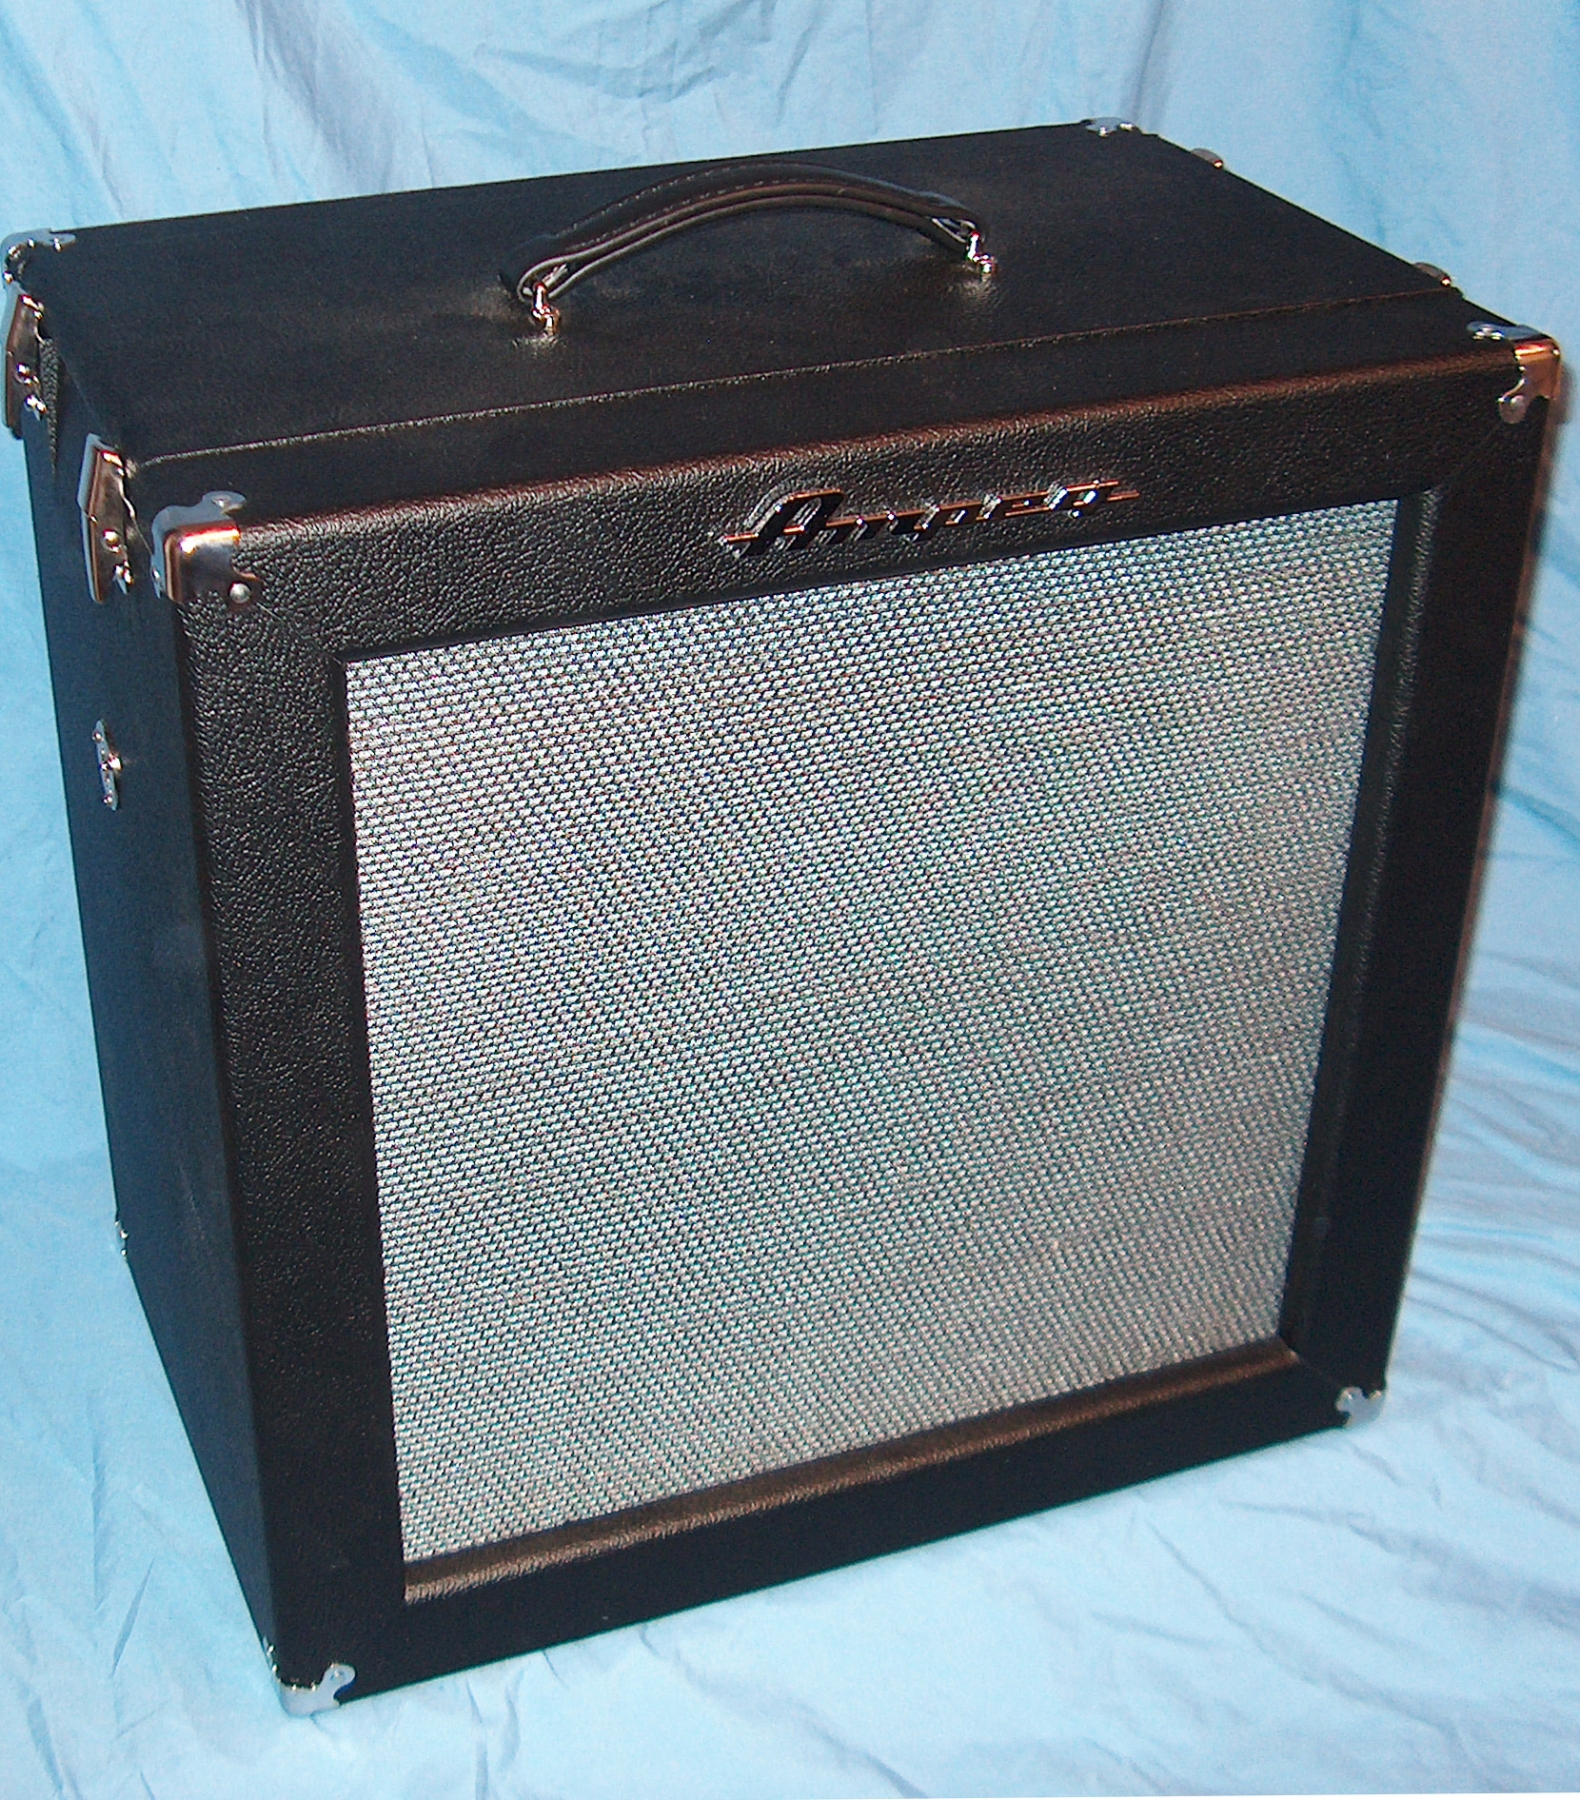 1967 style B15N Cabinet